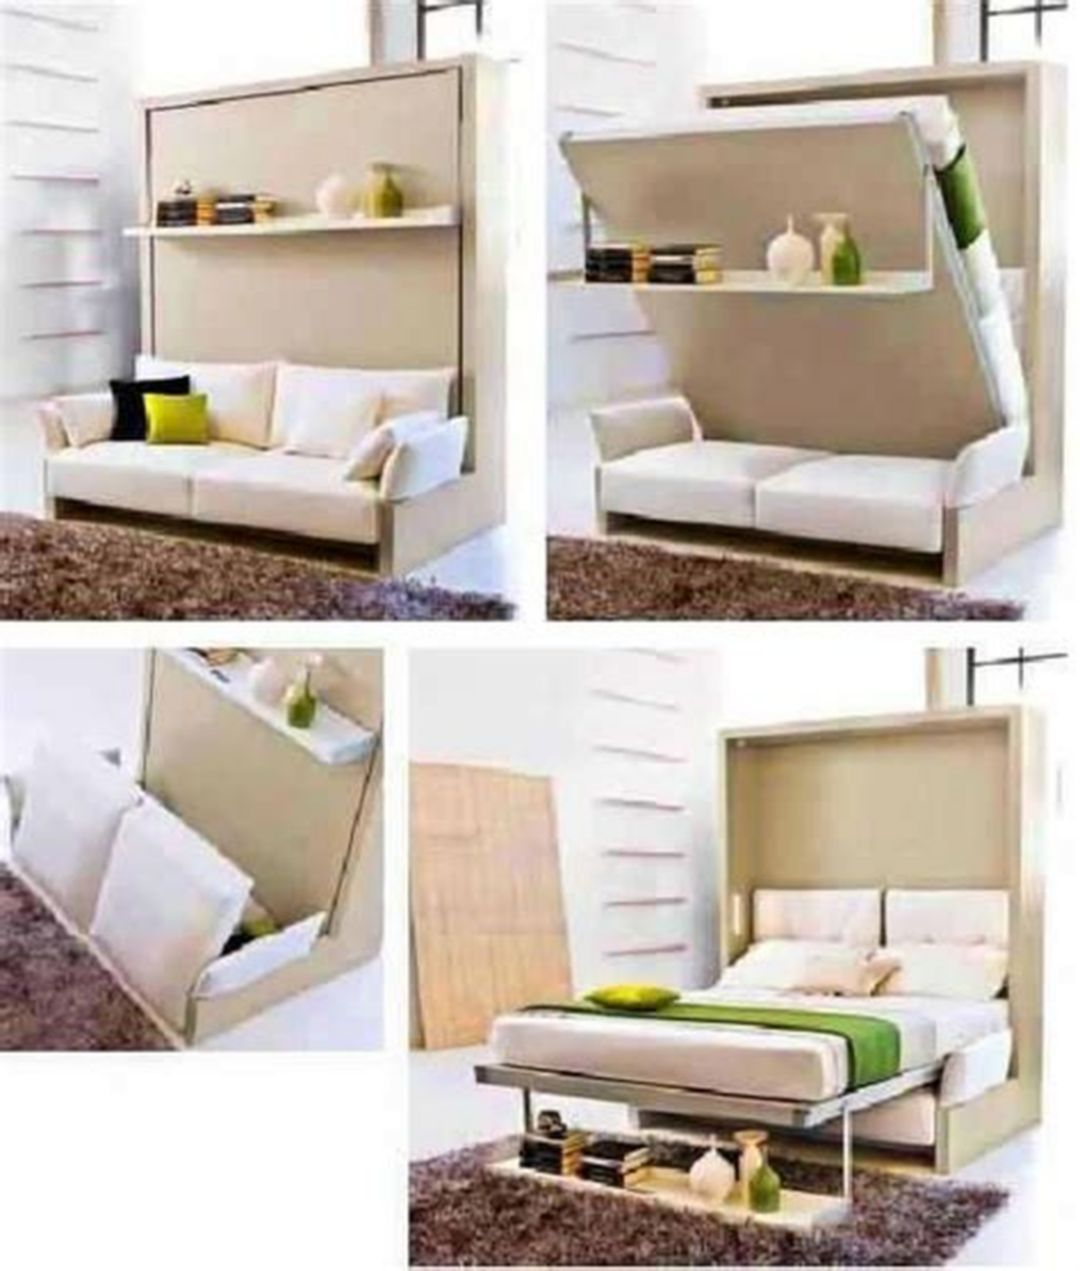 30 Amazing Convertible Furniture Design For Small Spaces Ideas In 2020 Convertible Furniture Murphy Bed Diy Small Spaces